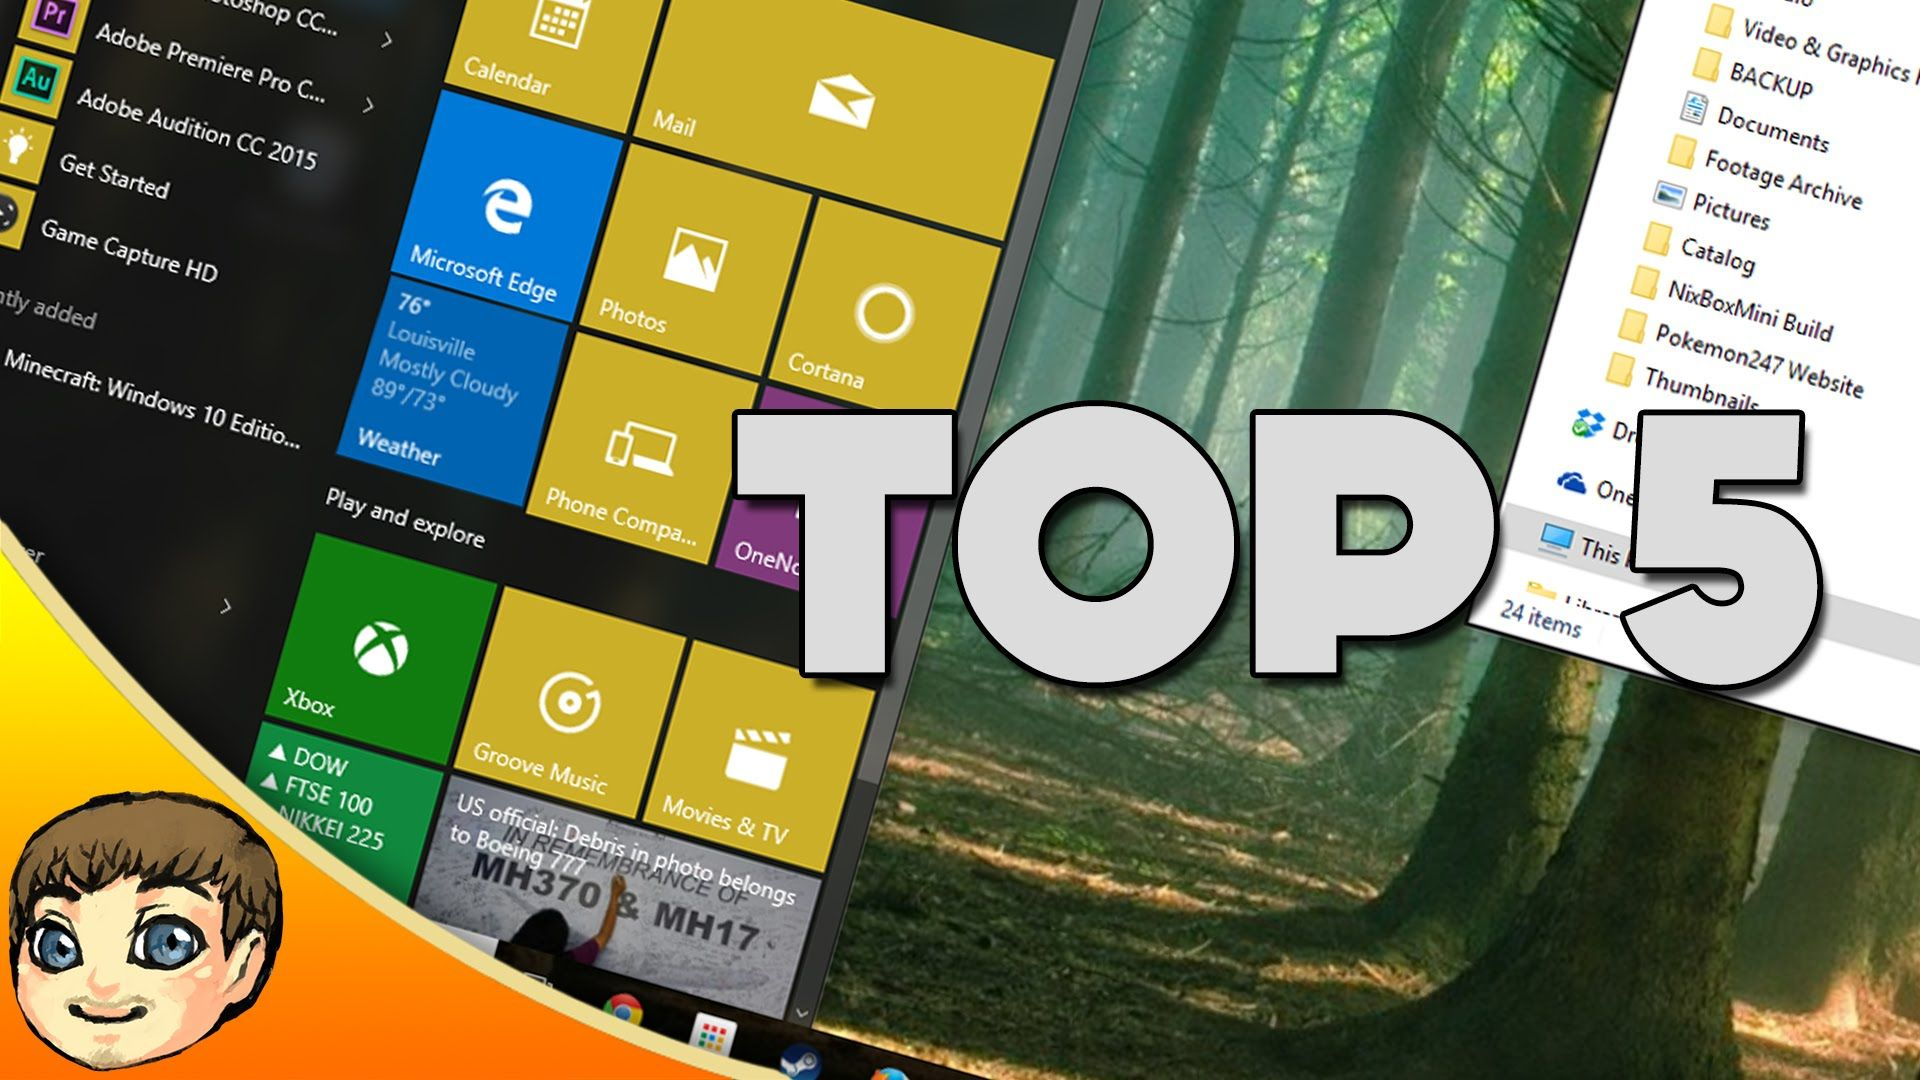 things to do in windows 10